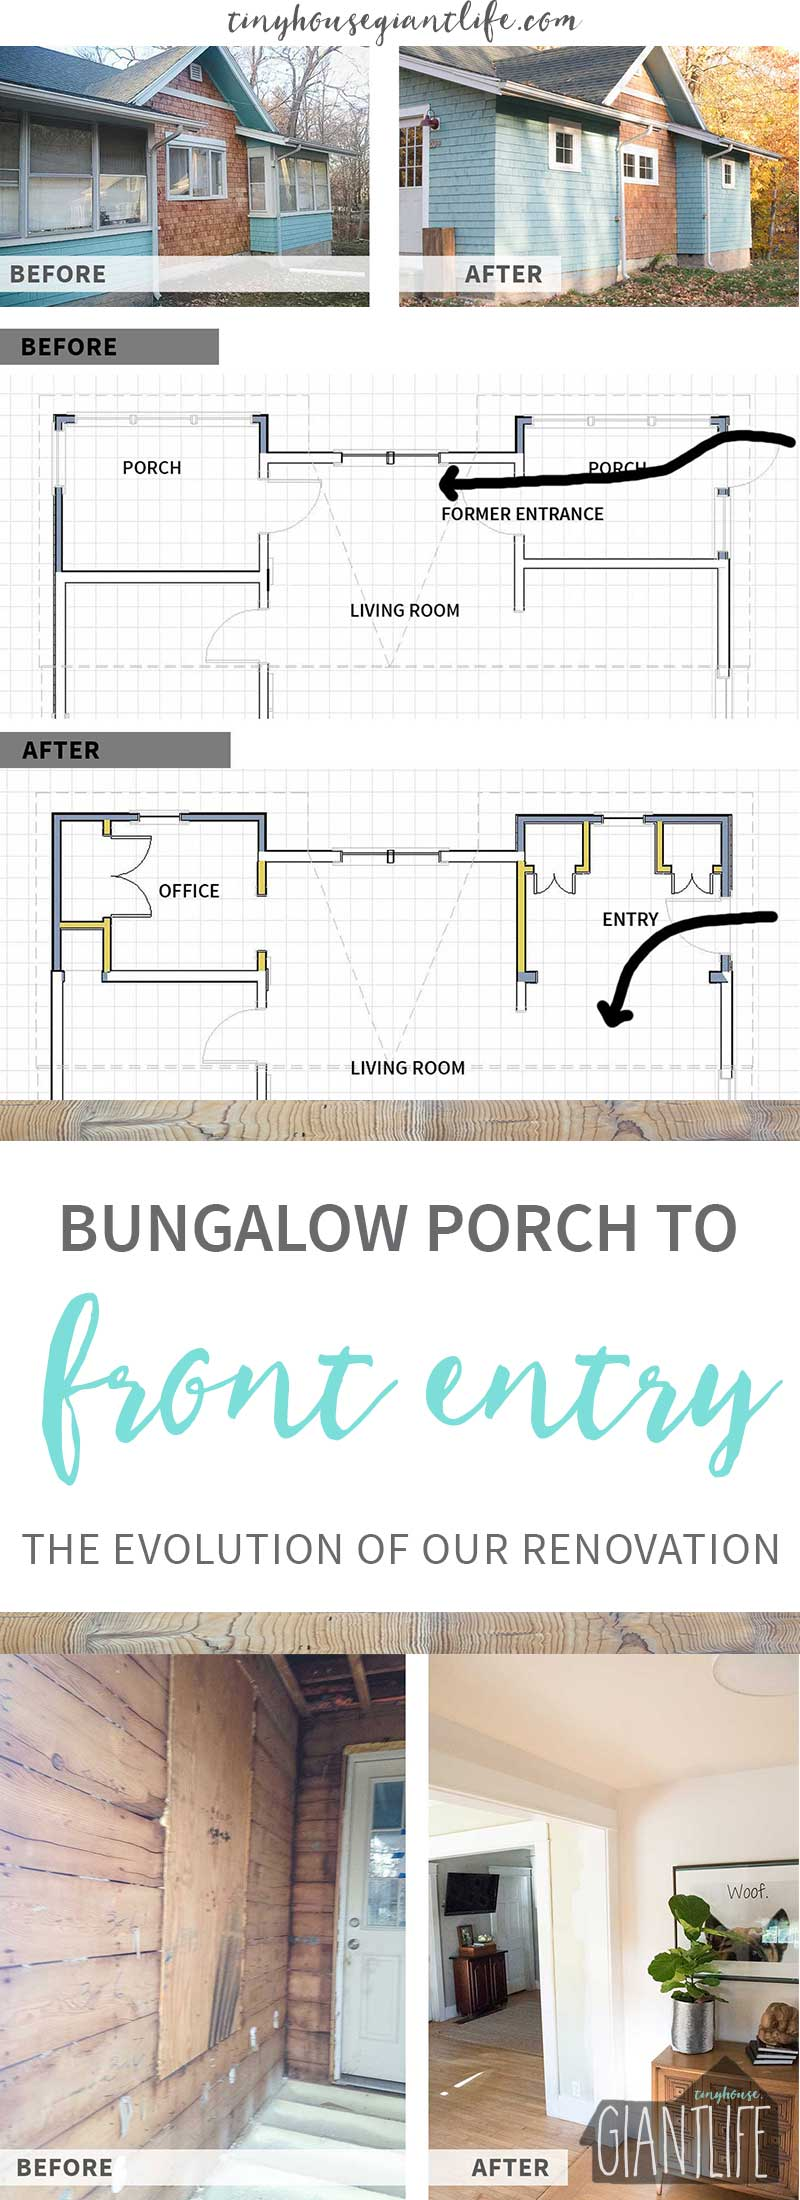 Bungalow Porch To Front Entry | One Room Challenge Week 1